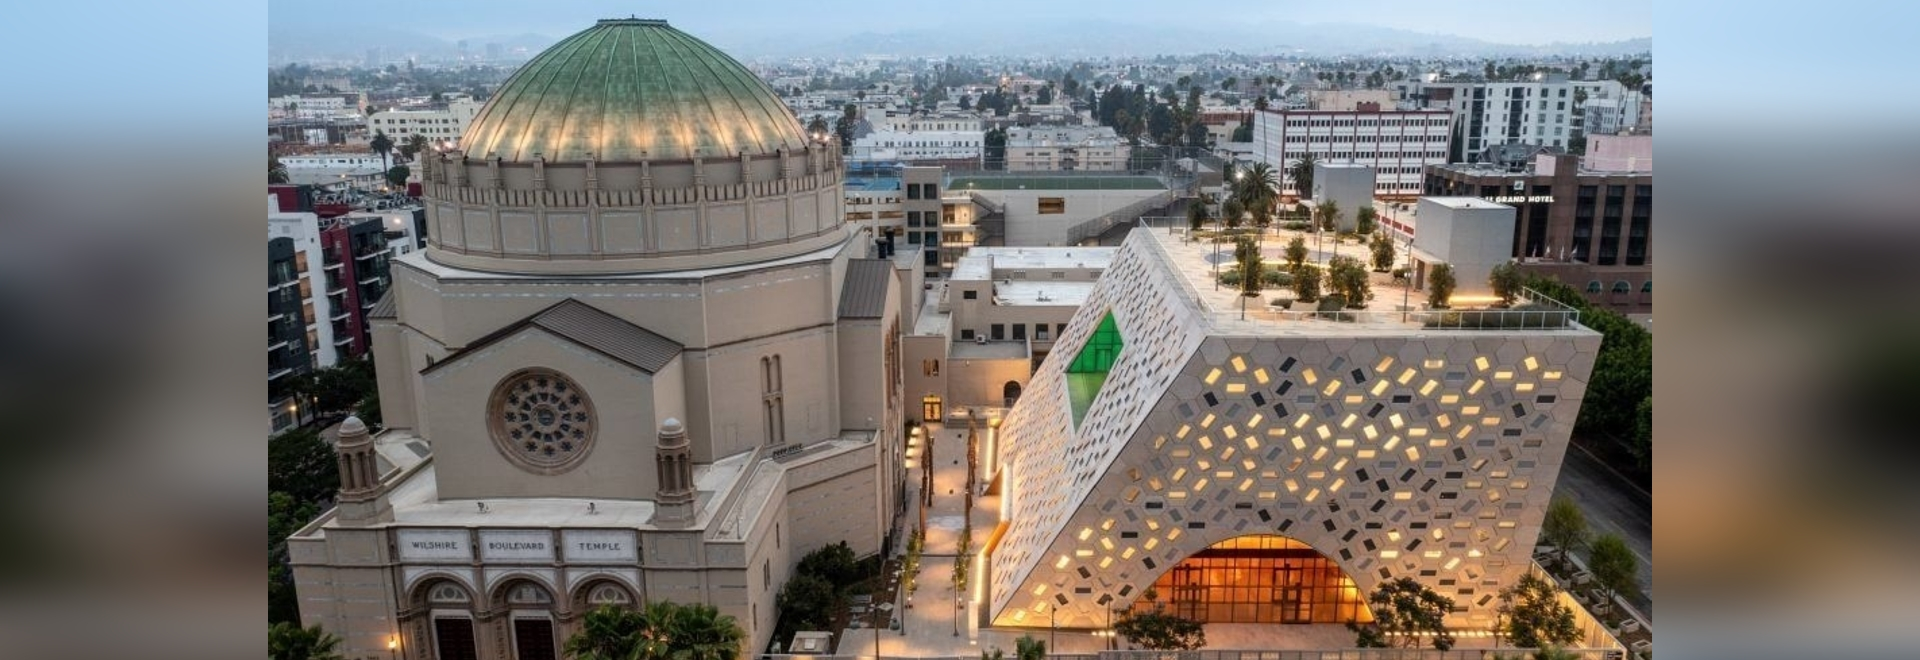 OMA completes its jewish temple in LA, introducing an iconic, radiant monolith